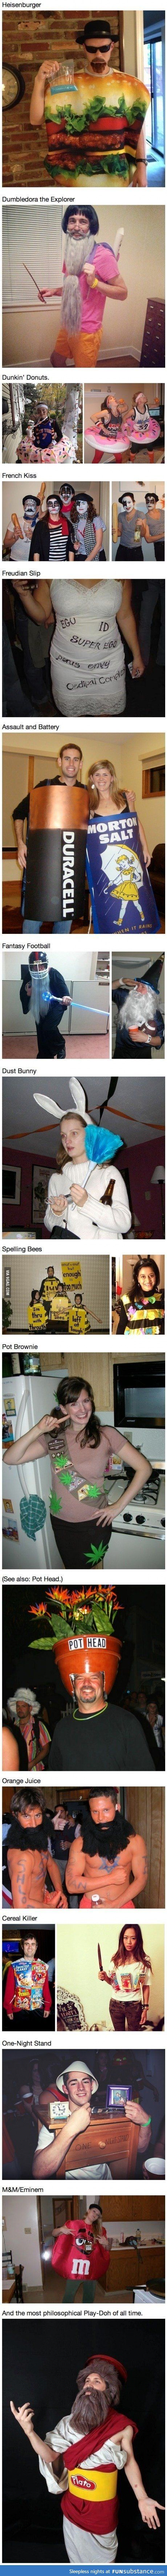 Some of these punny costume ideas are inappropriate but some are great. I love the Plato costume at the end.